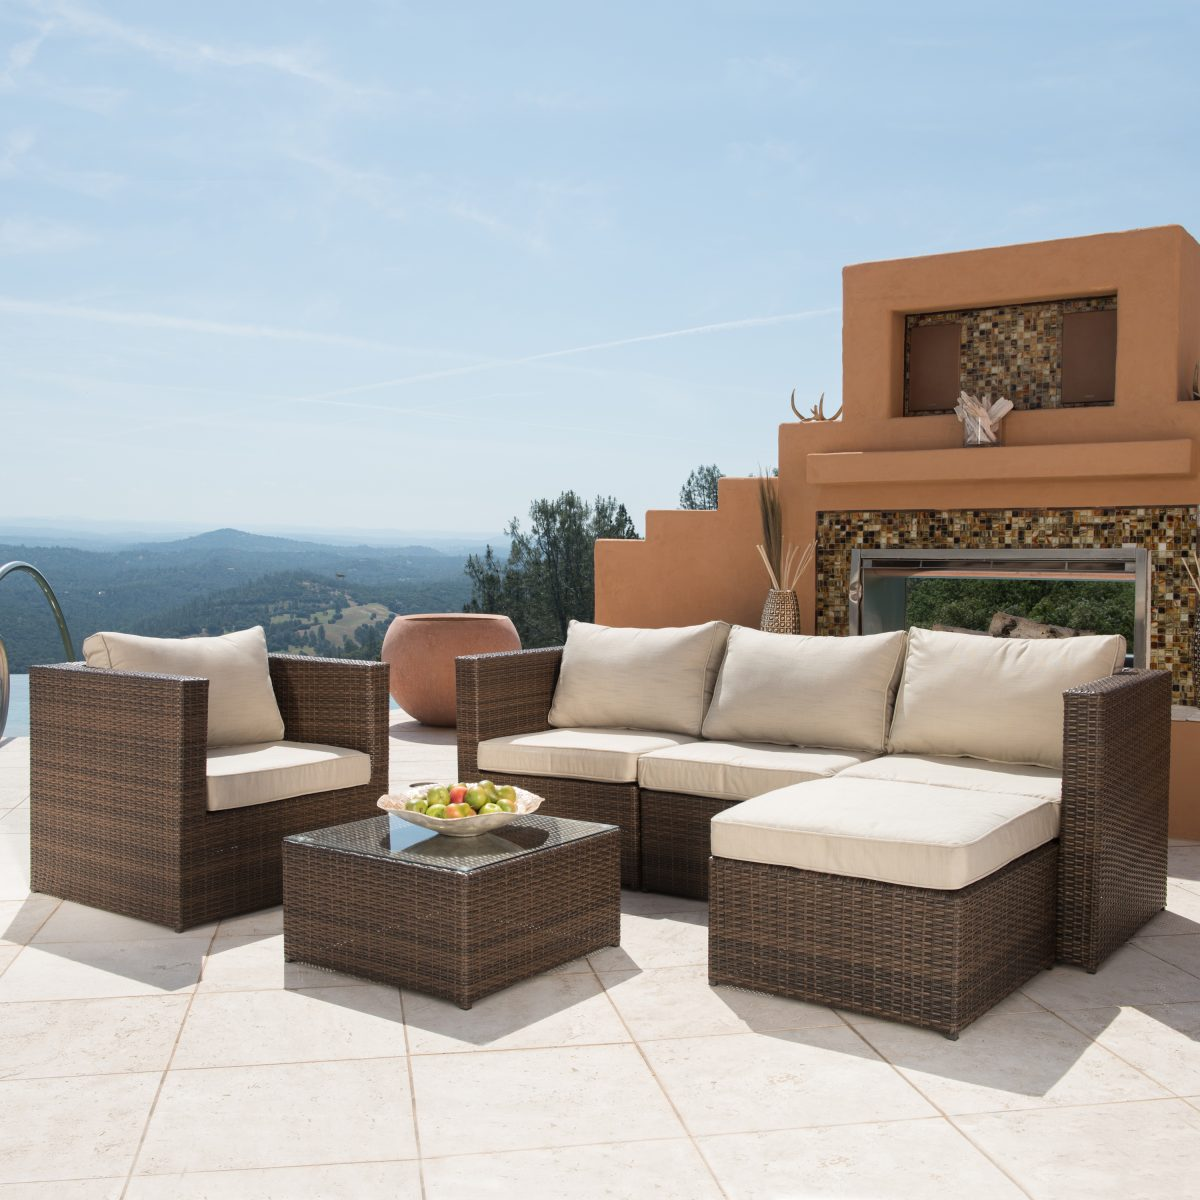 Borealis Trey 6 Piece Resin Wicker Furniture Set Starsong